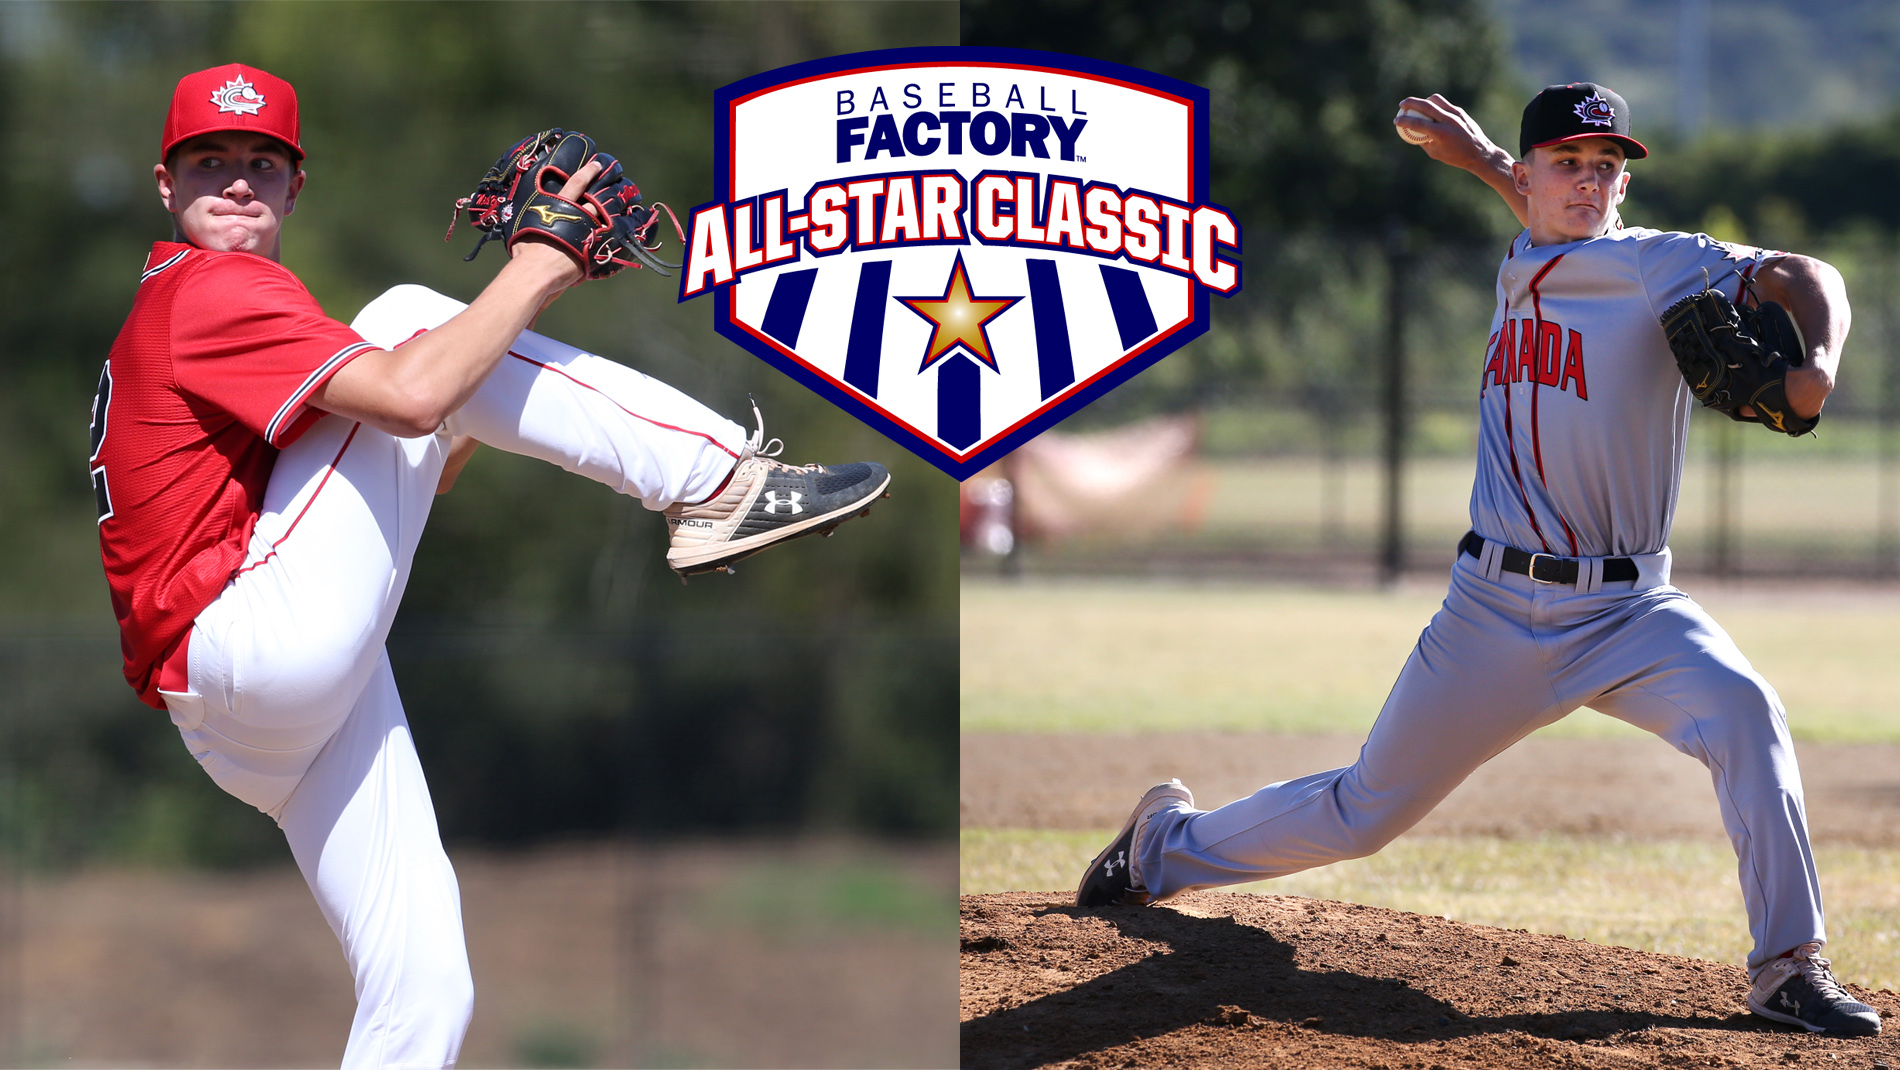 Bratt, Ziegler to play in Baseball Factory All-Star Classic